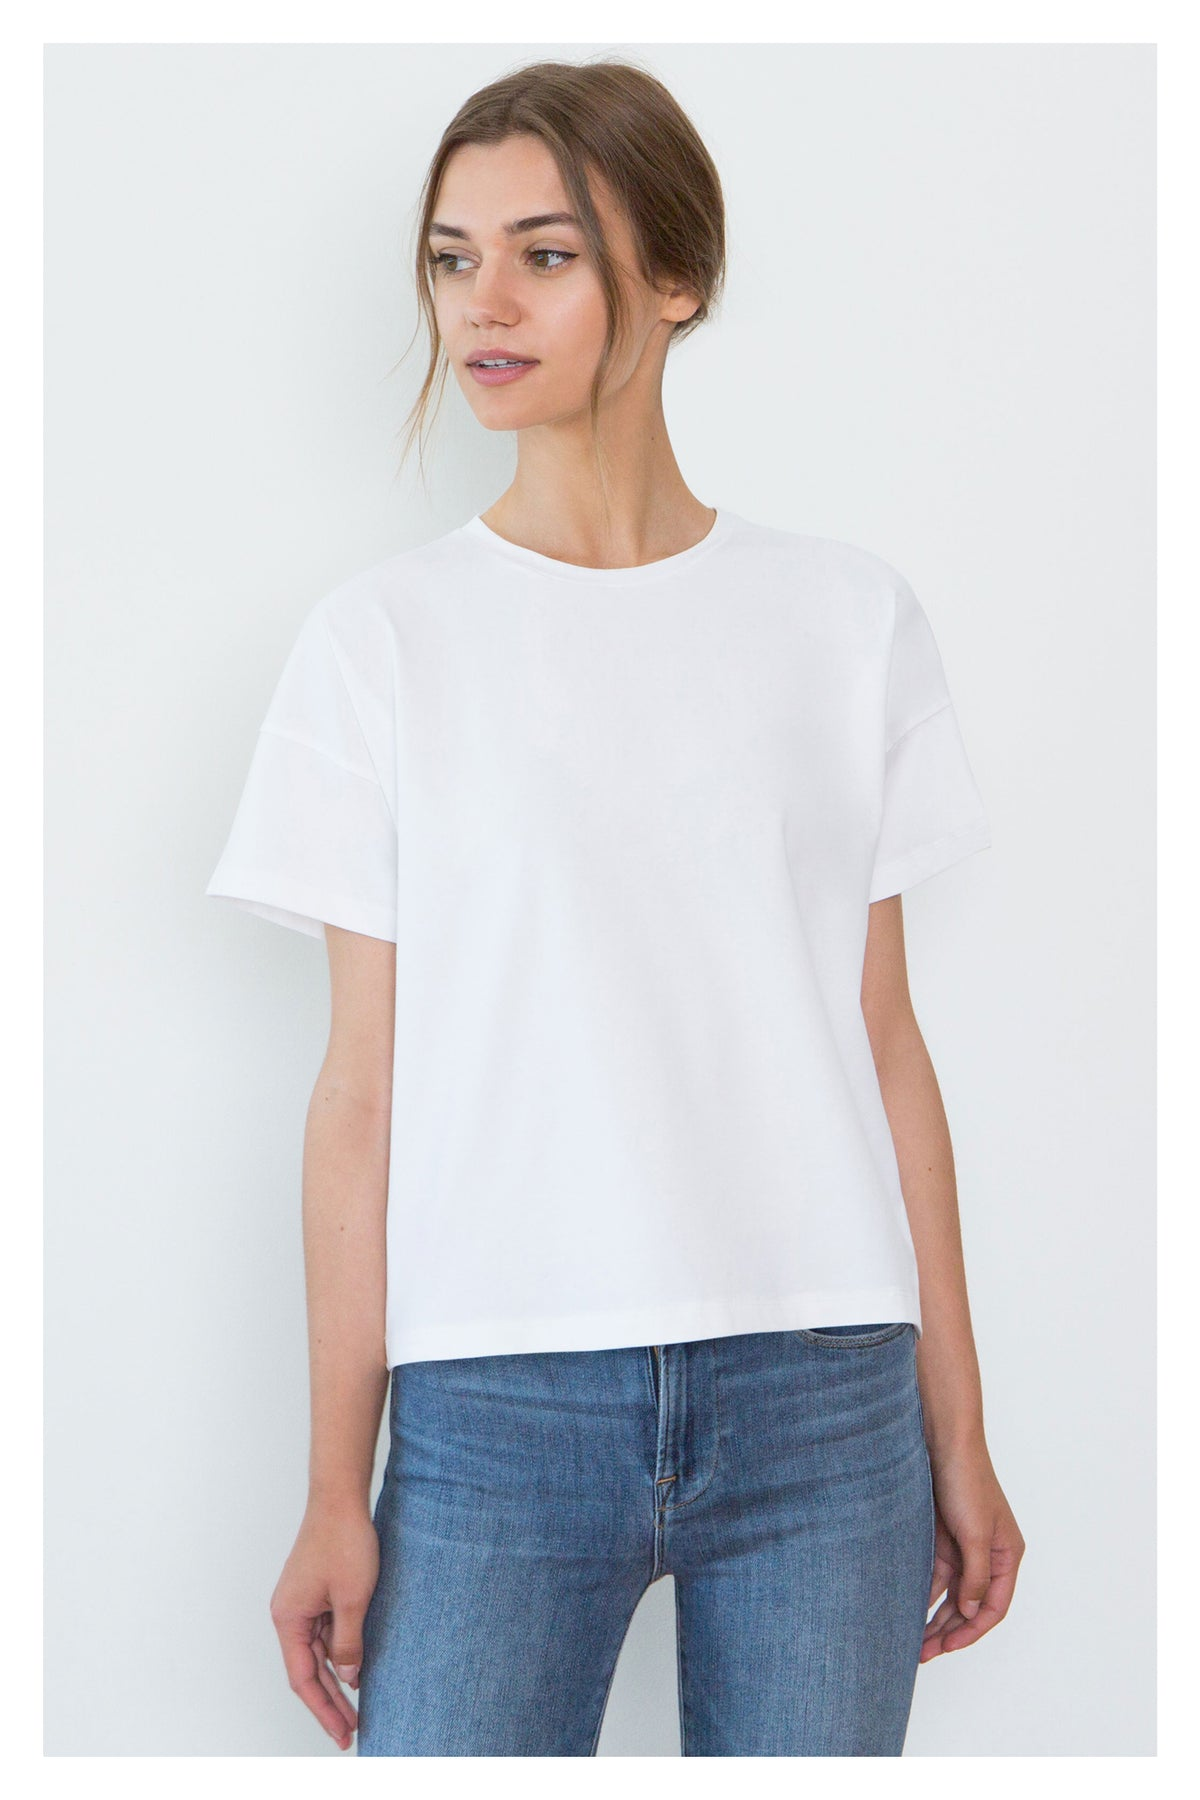 Bevin White Organic Cotton Boyfriend T-Shirt